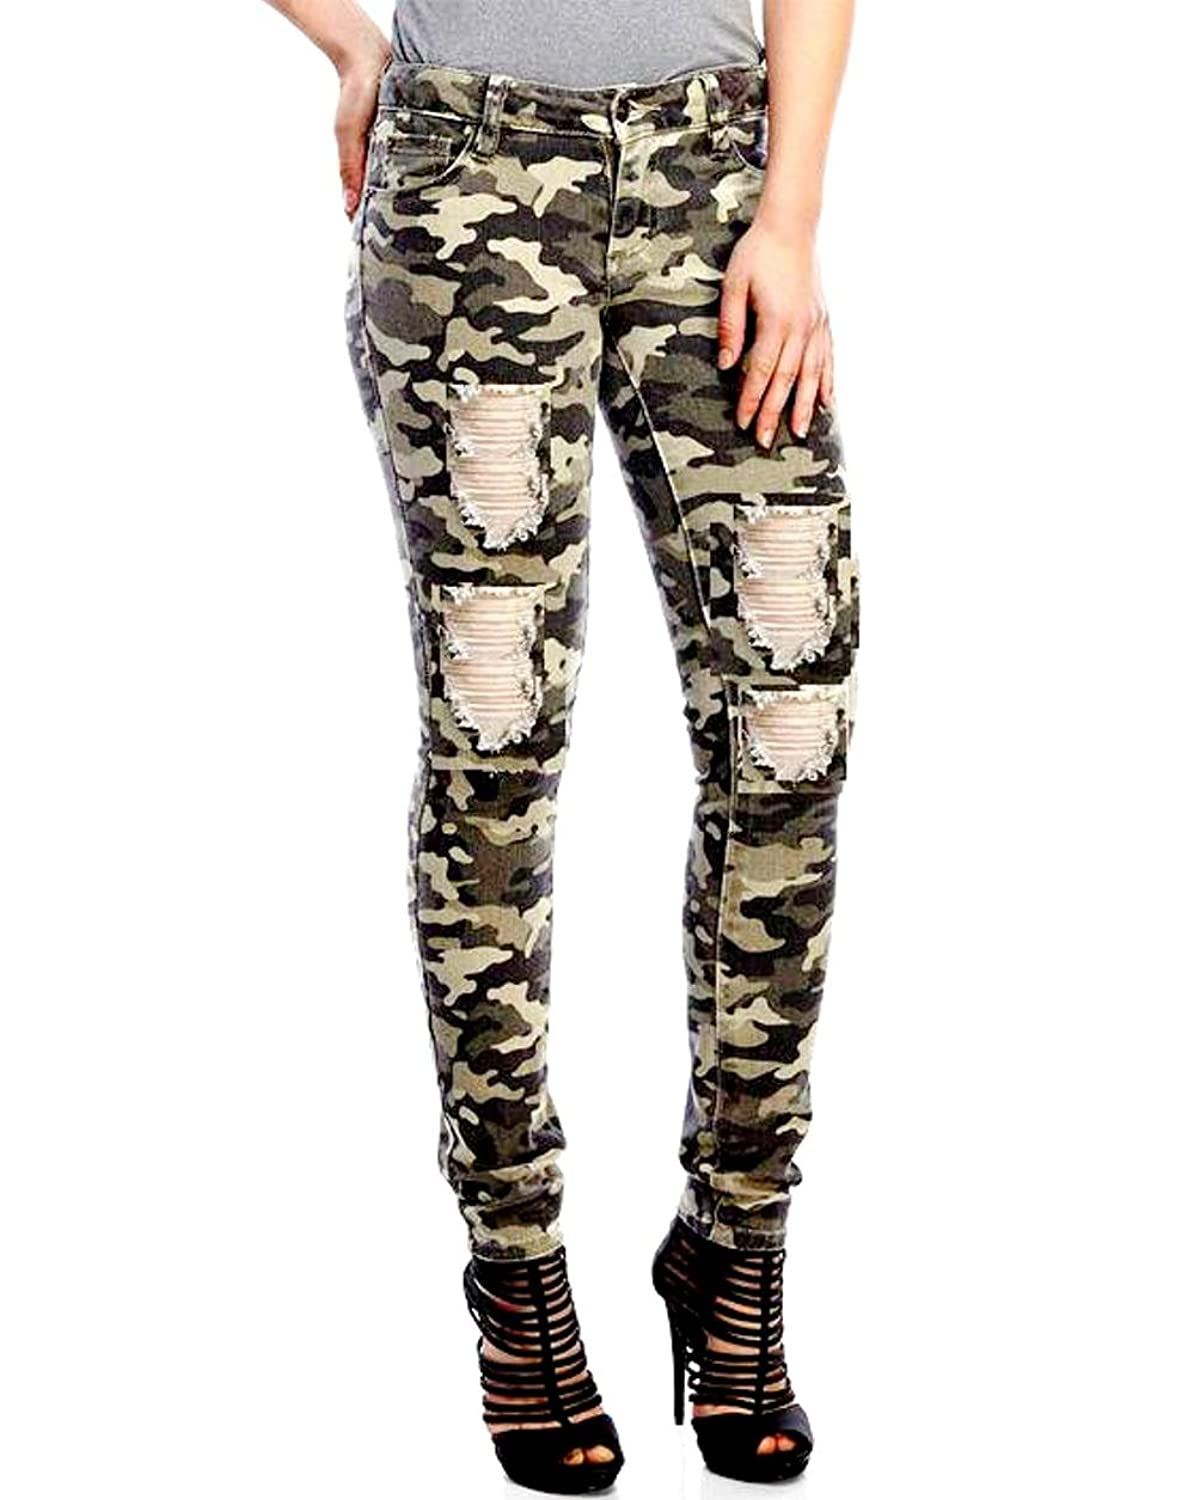 34e5e7b2489 IQR ladies Juniors Stretch Distressed Ripped Camo Camouflage Skinny JEANS  PANTS 85%OFF